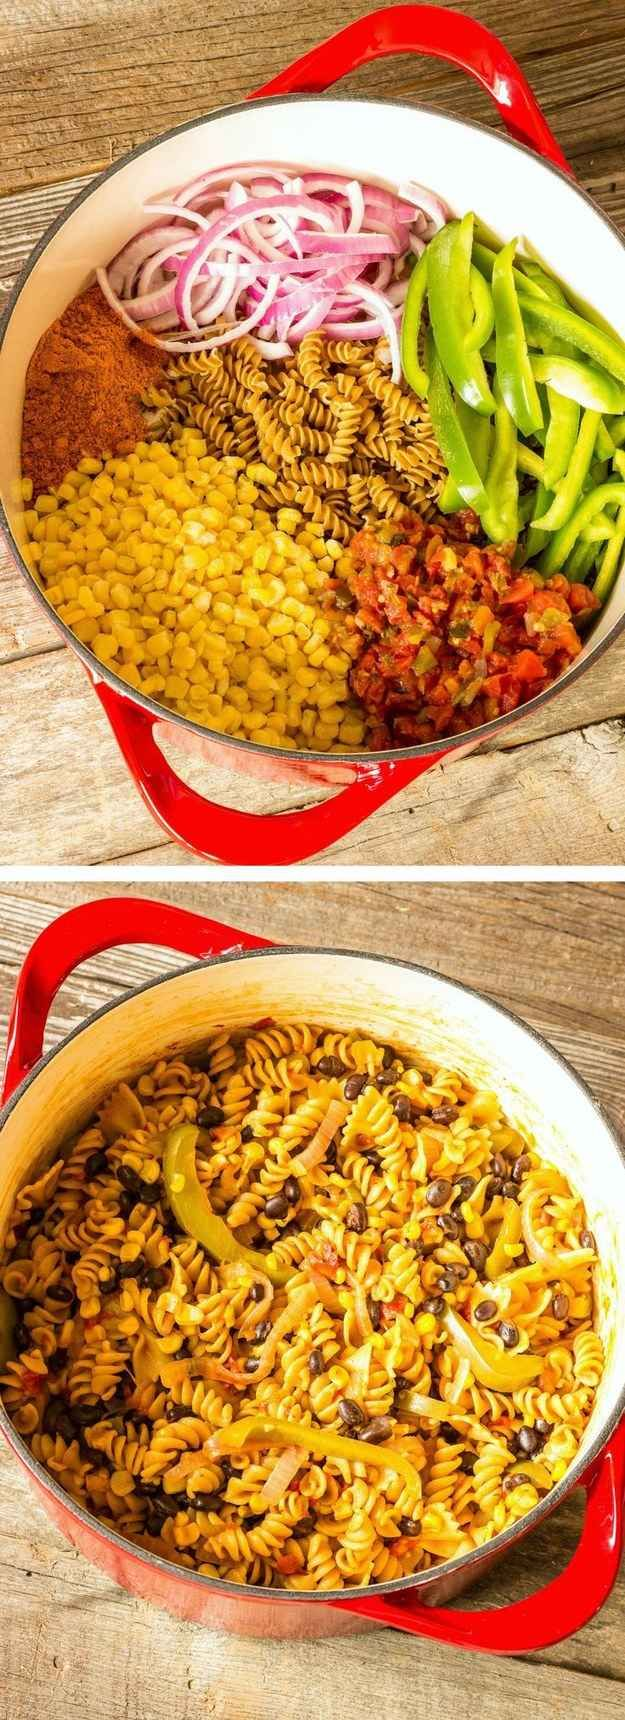 Veggie-packed Southwest Pasta